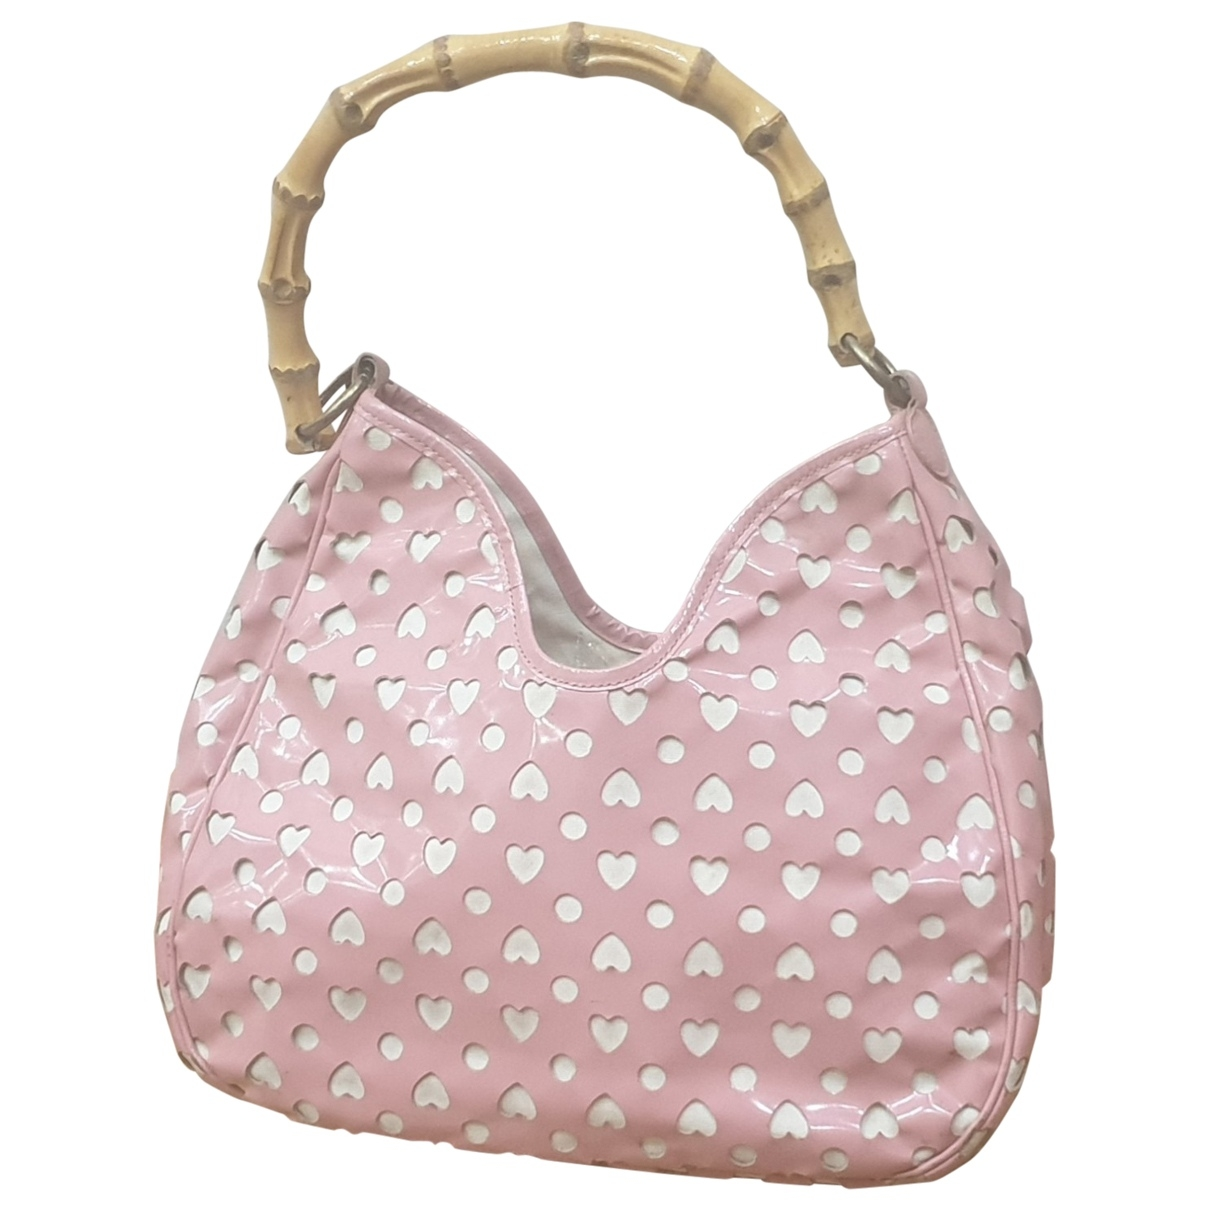 Moschino Cheap And Chic - Sac a main   pour femme - rose